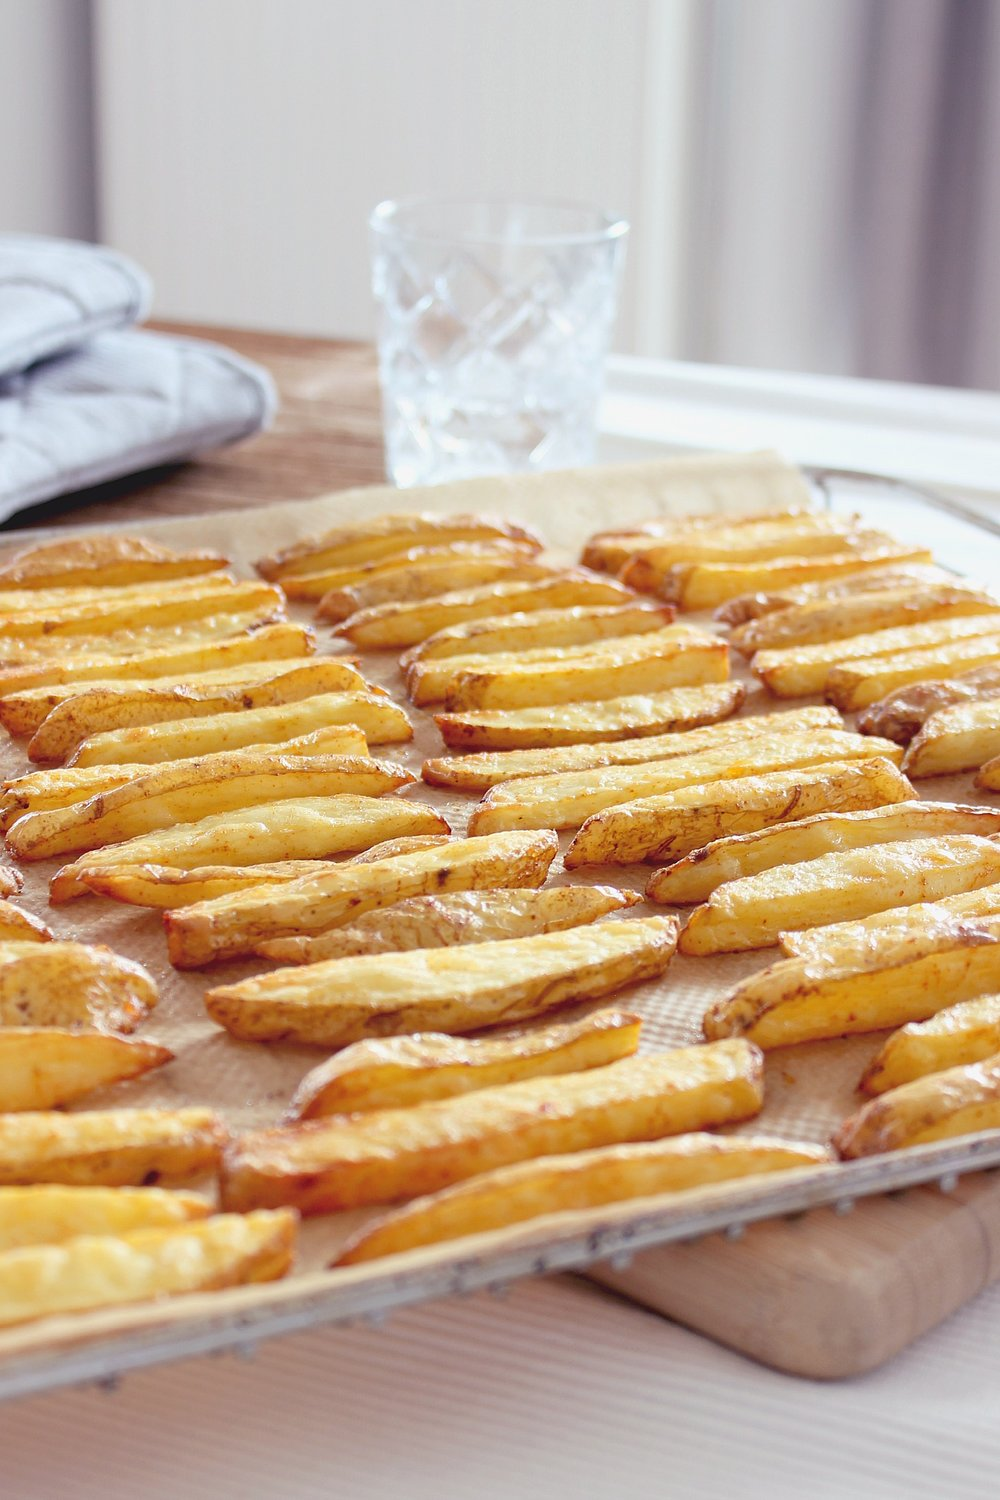 home madeoven friesin under 1h - « FOOD »